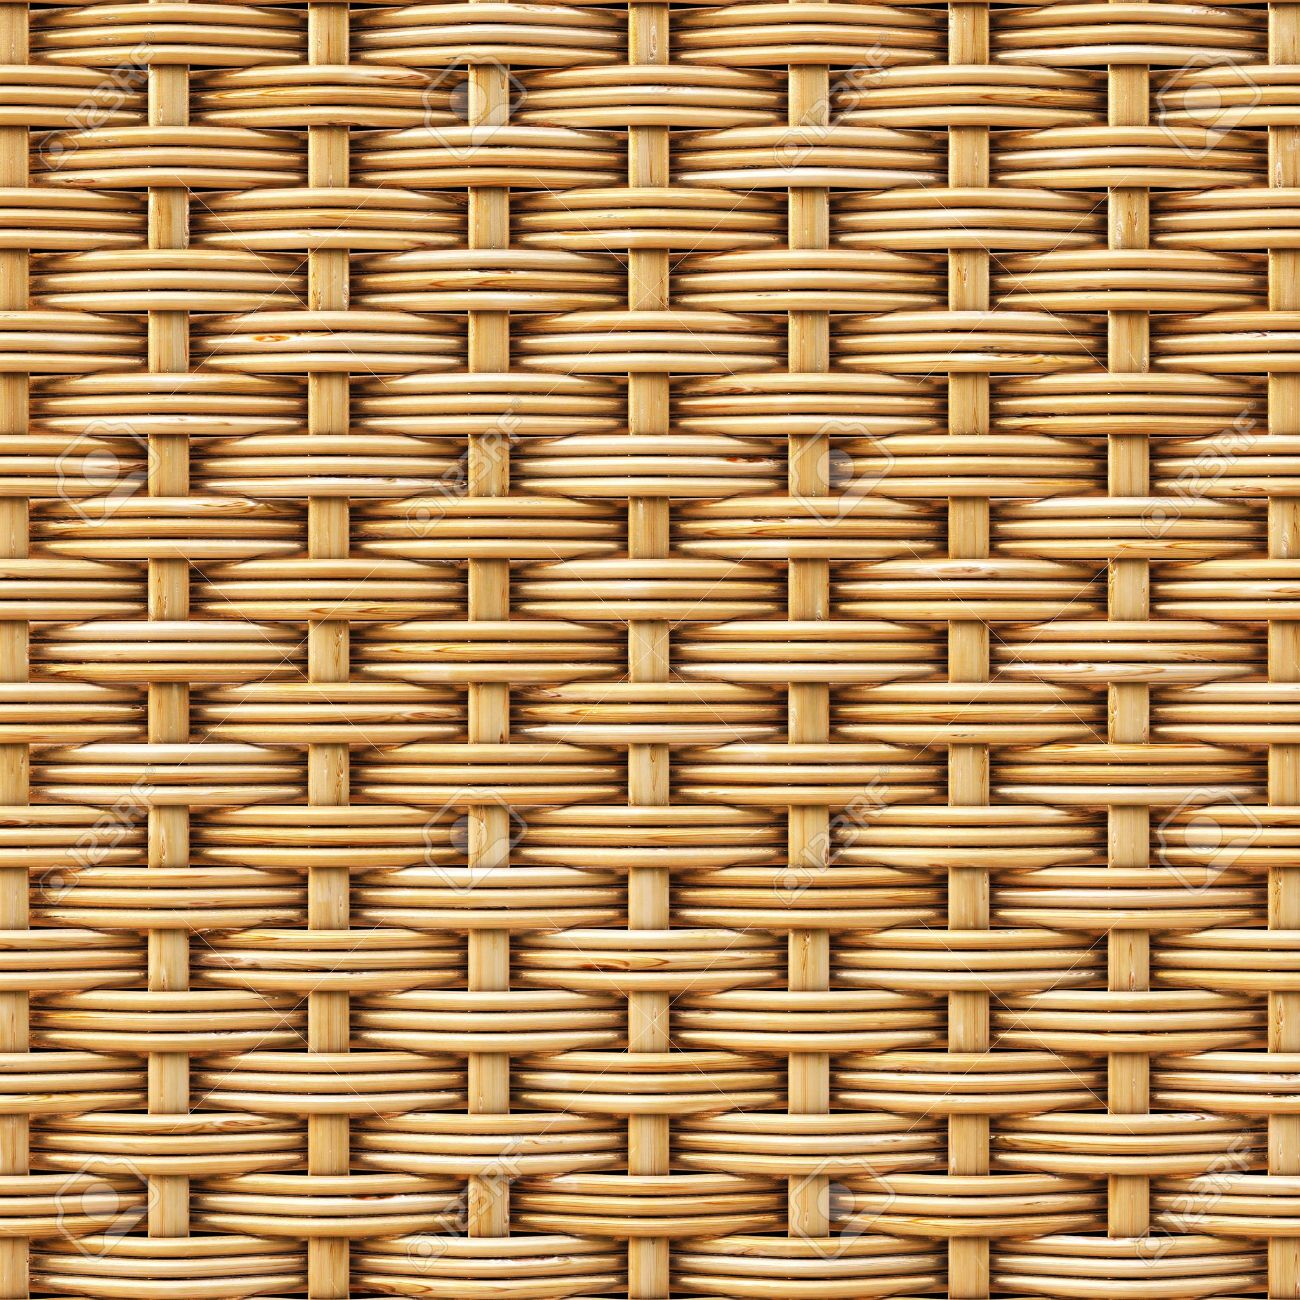 Woven Rattan With Natural Patterns Stock Photo, Picture And Royalty on phoenix sylvestris, nungu fruit, areca catechu, bactris gasipaes,